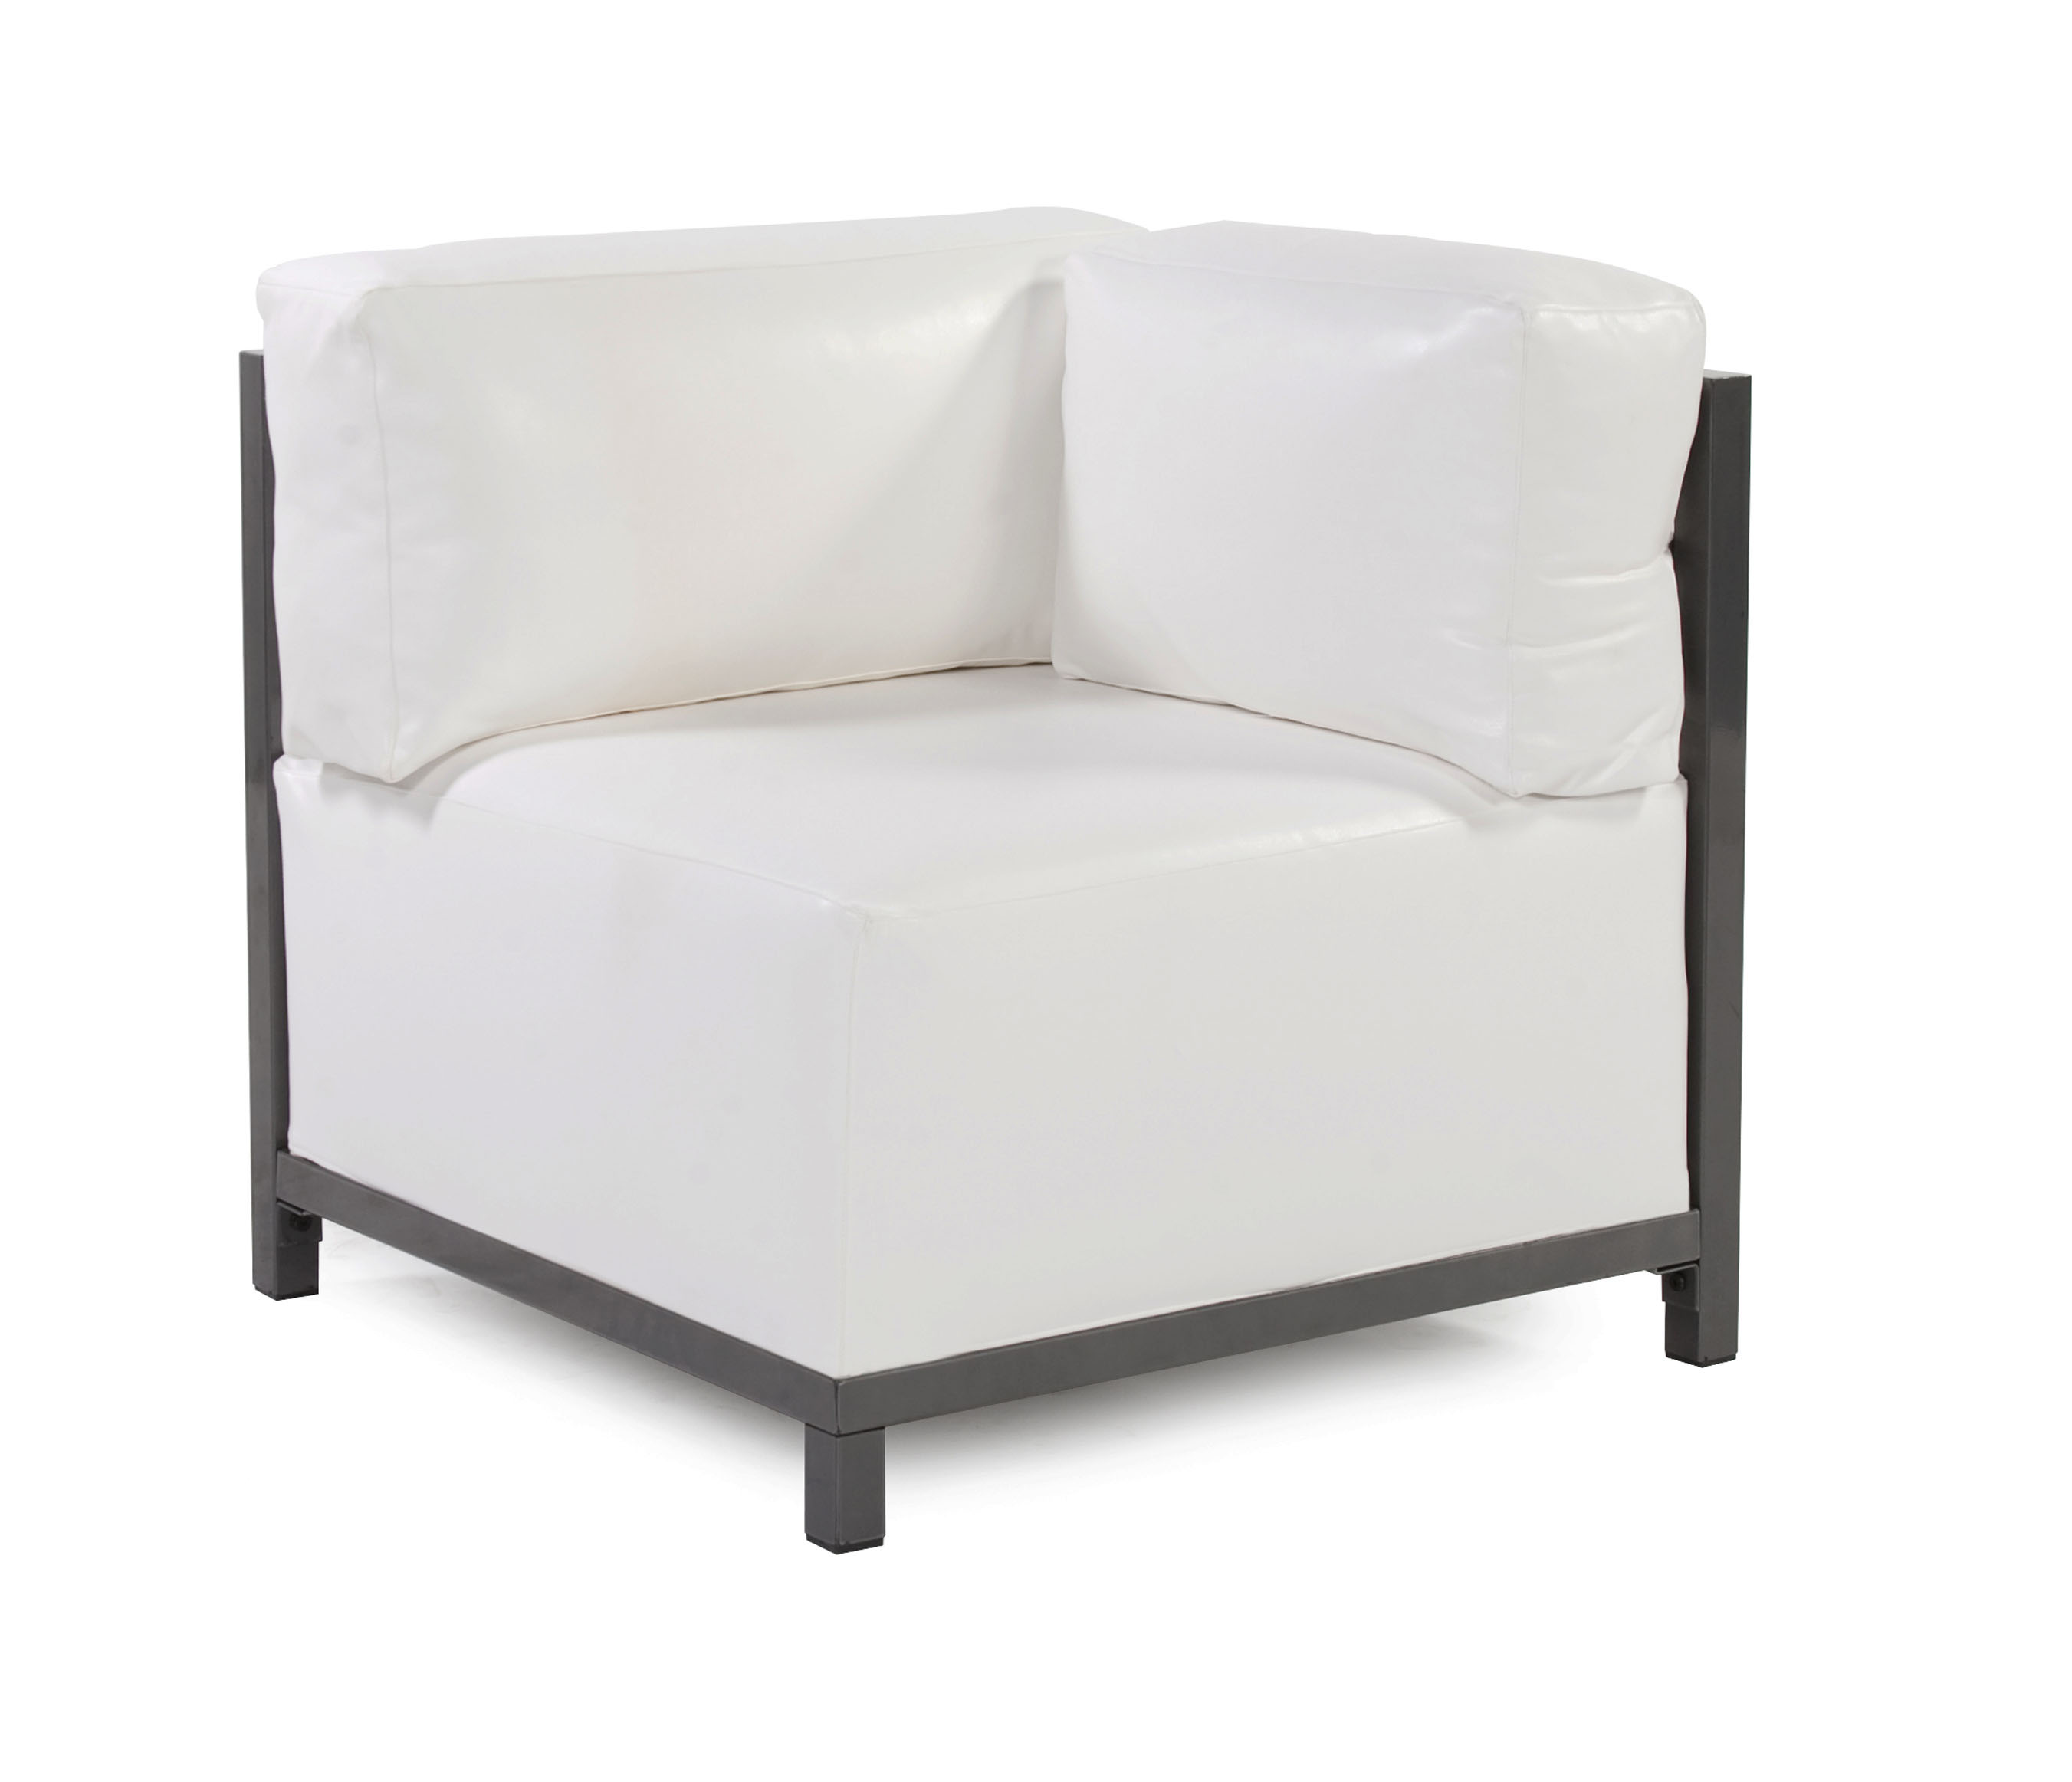 Lounge Chair Corner Atlantis White Vinyl Arizona Party Rental